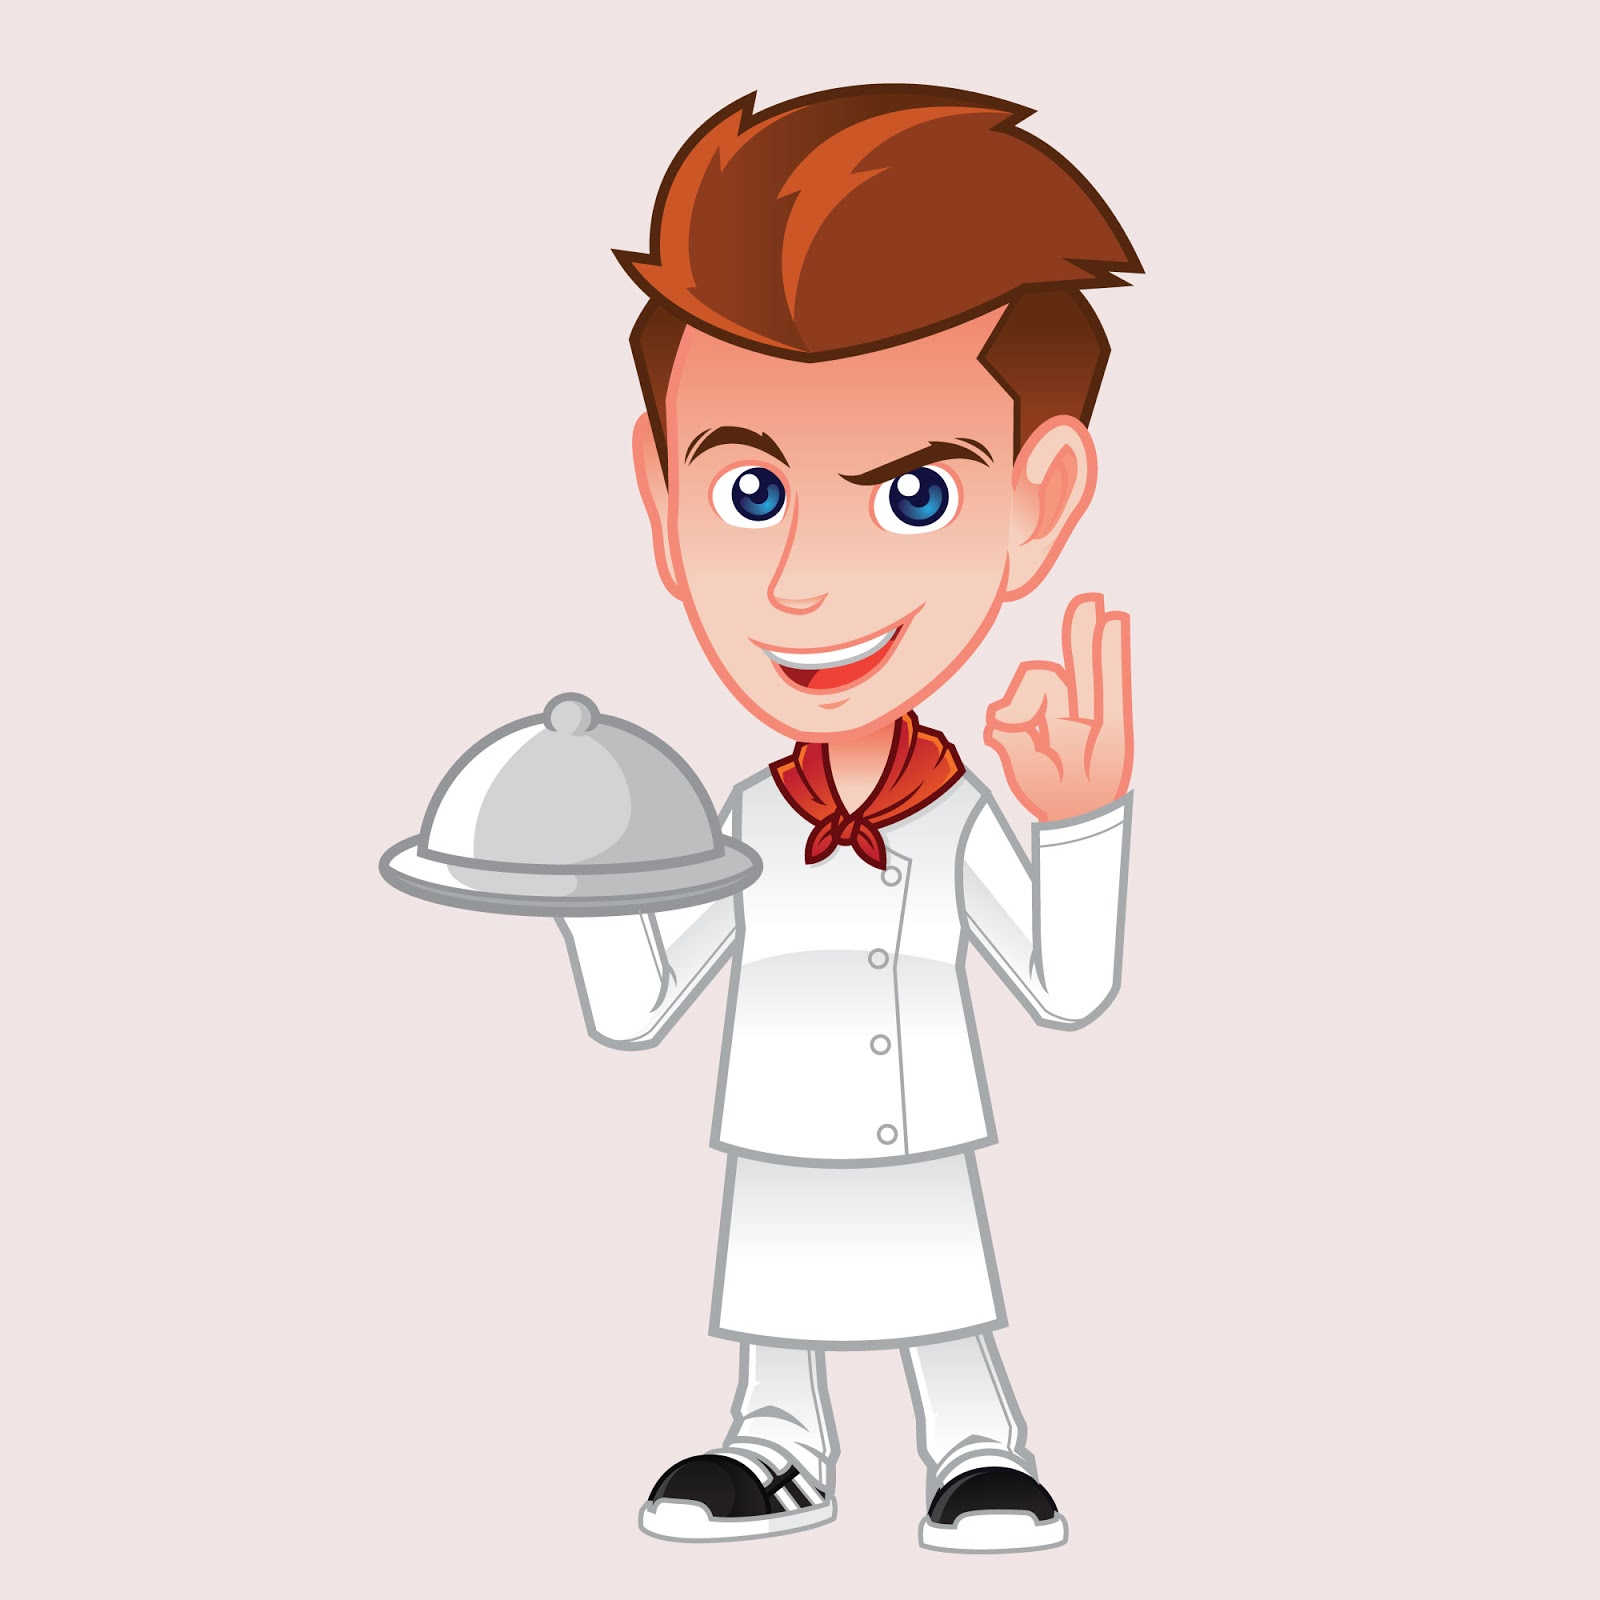 Chef Mascot Logo Free Download Vector CDR, AI, EPS and PNG Formats